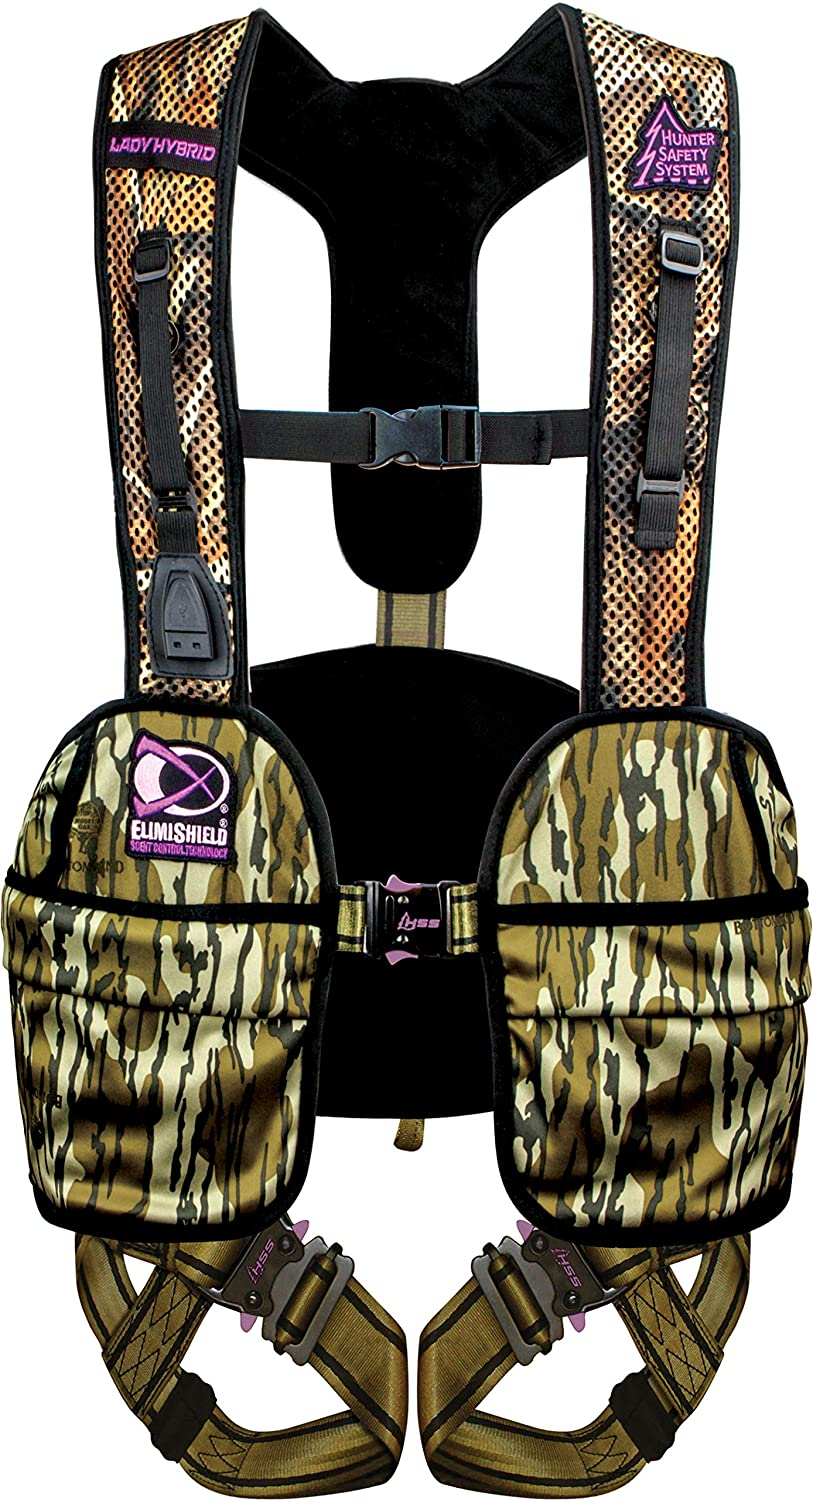 Hunter Safety System Lady Hybrid Treestand Safety Harness with ElimiShield Scent Control Technology, Mossy Oak